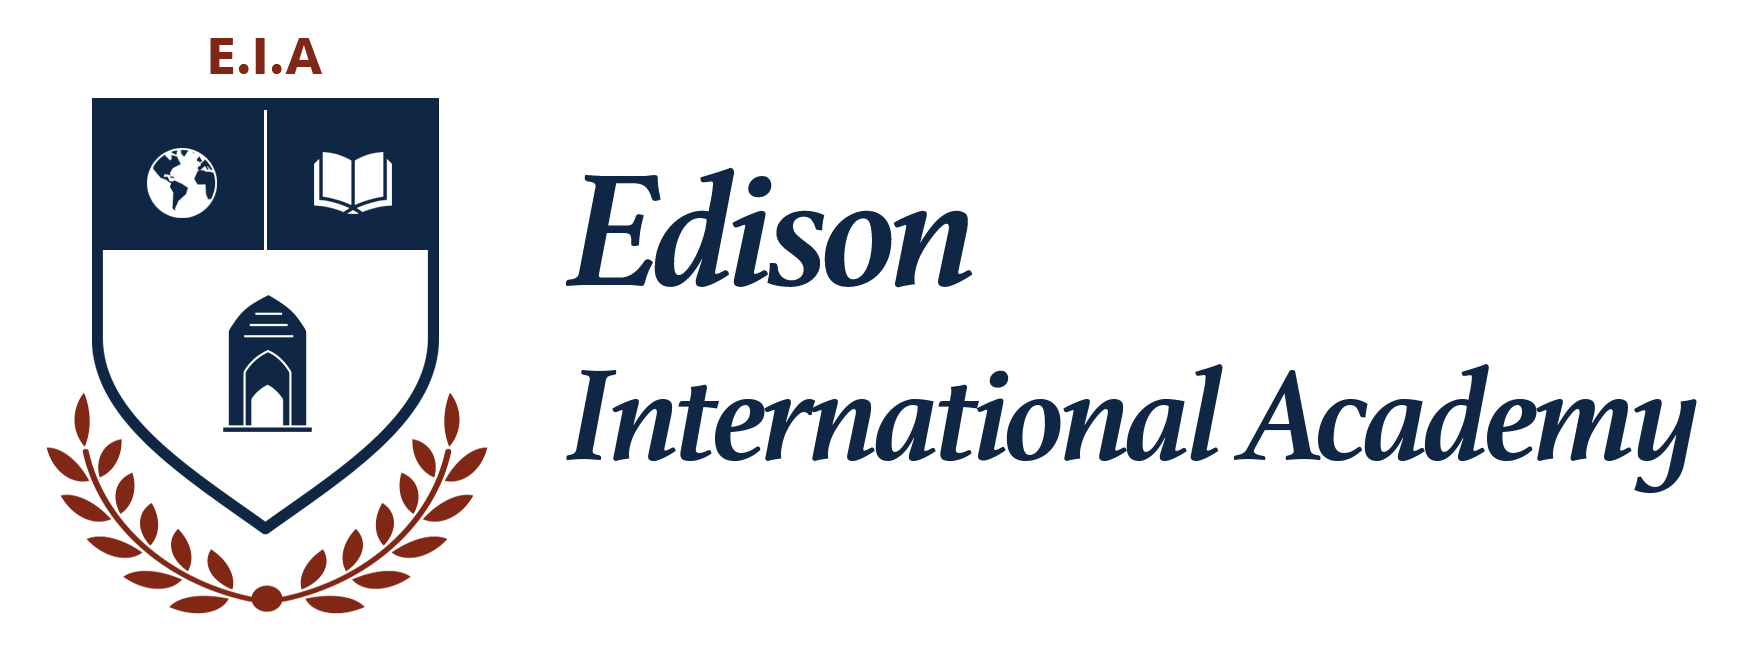 Edison International Academy, Aspire